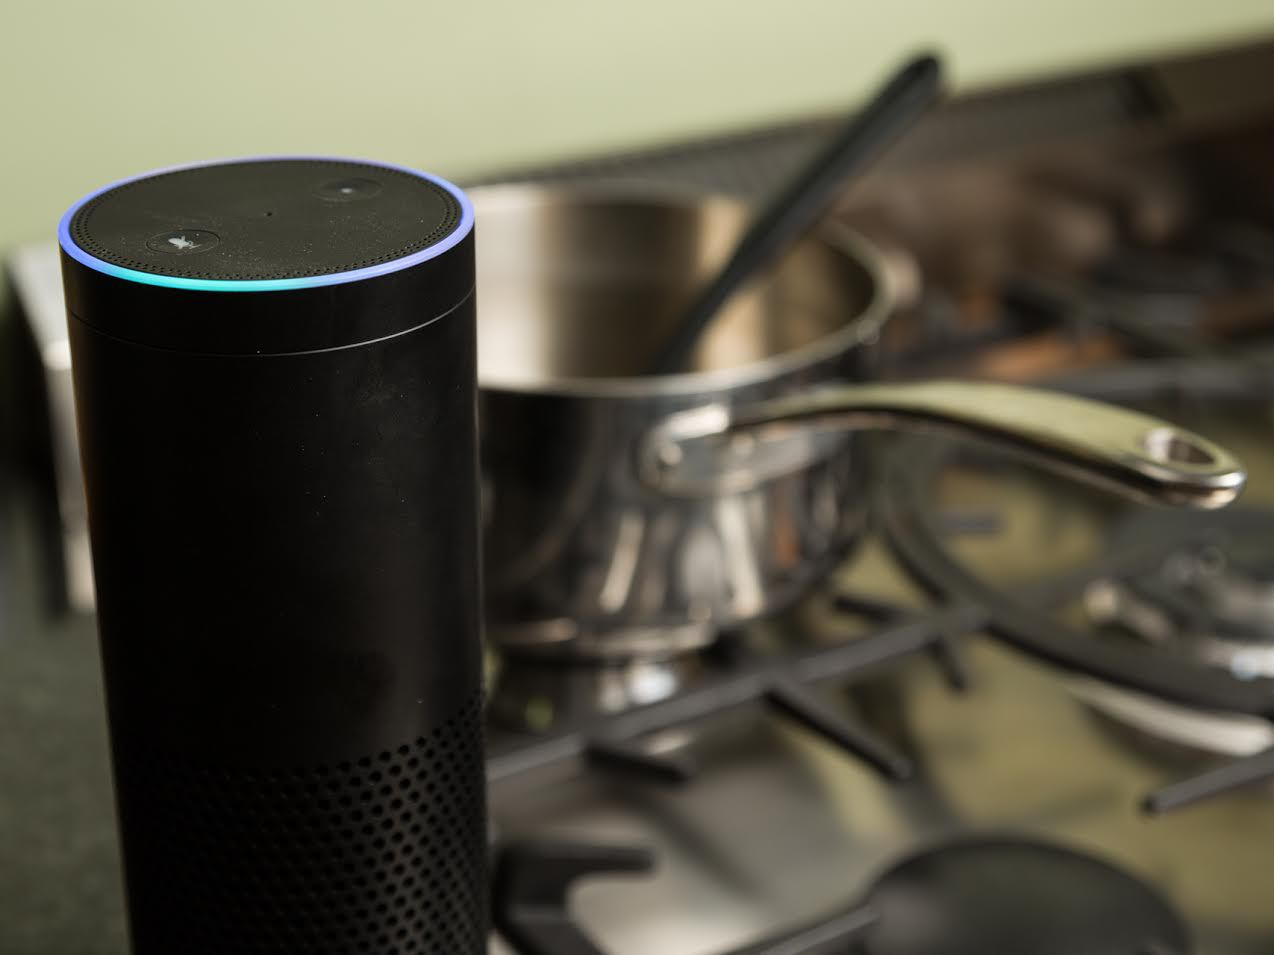 4 best uses for Alexa in every room of your home